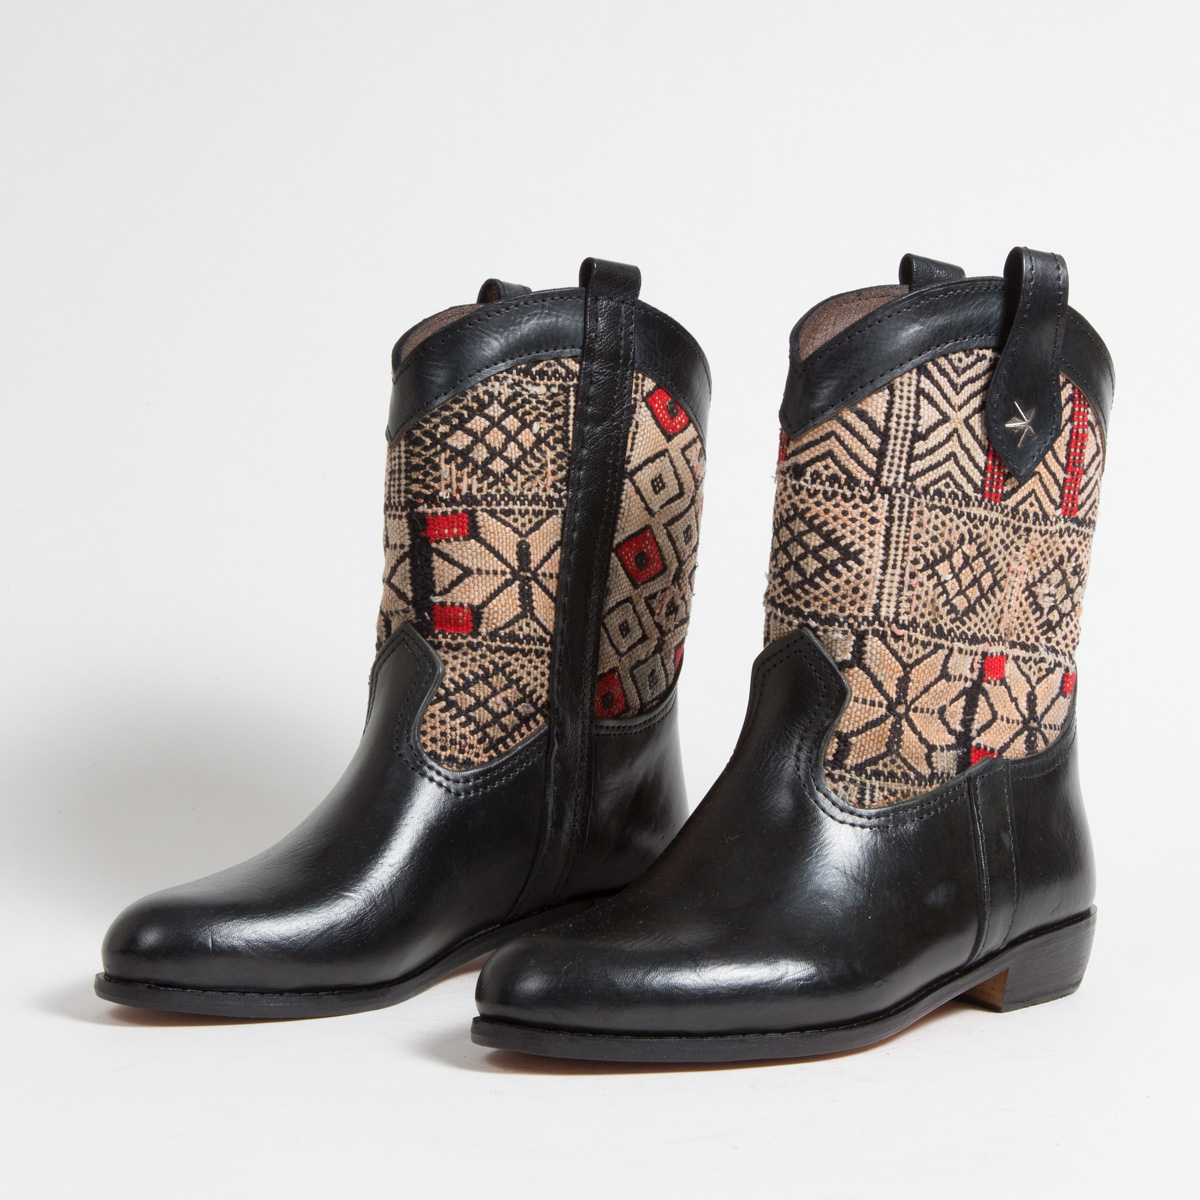 Bottines Kilim cuir mababouche artisanales (Réf. MN12-40)